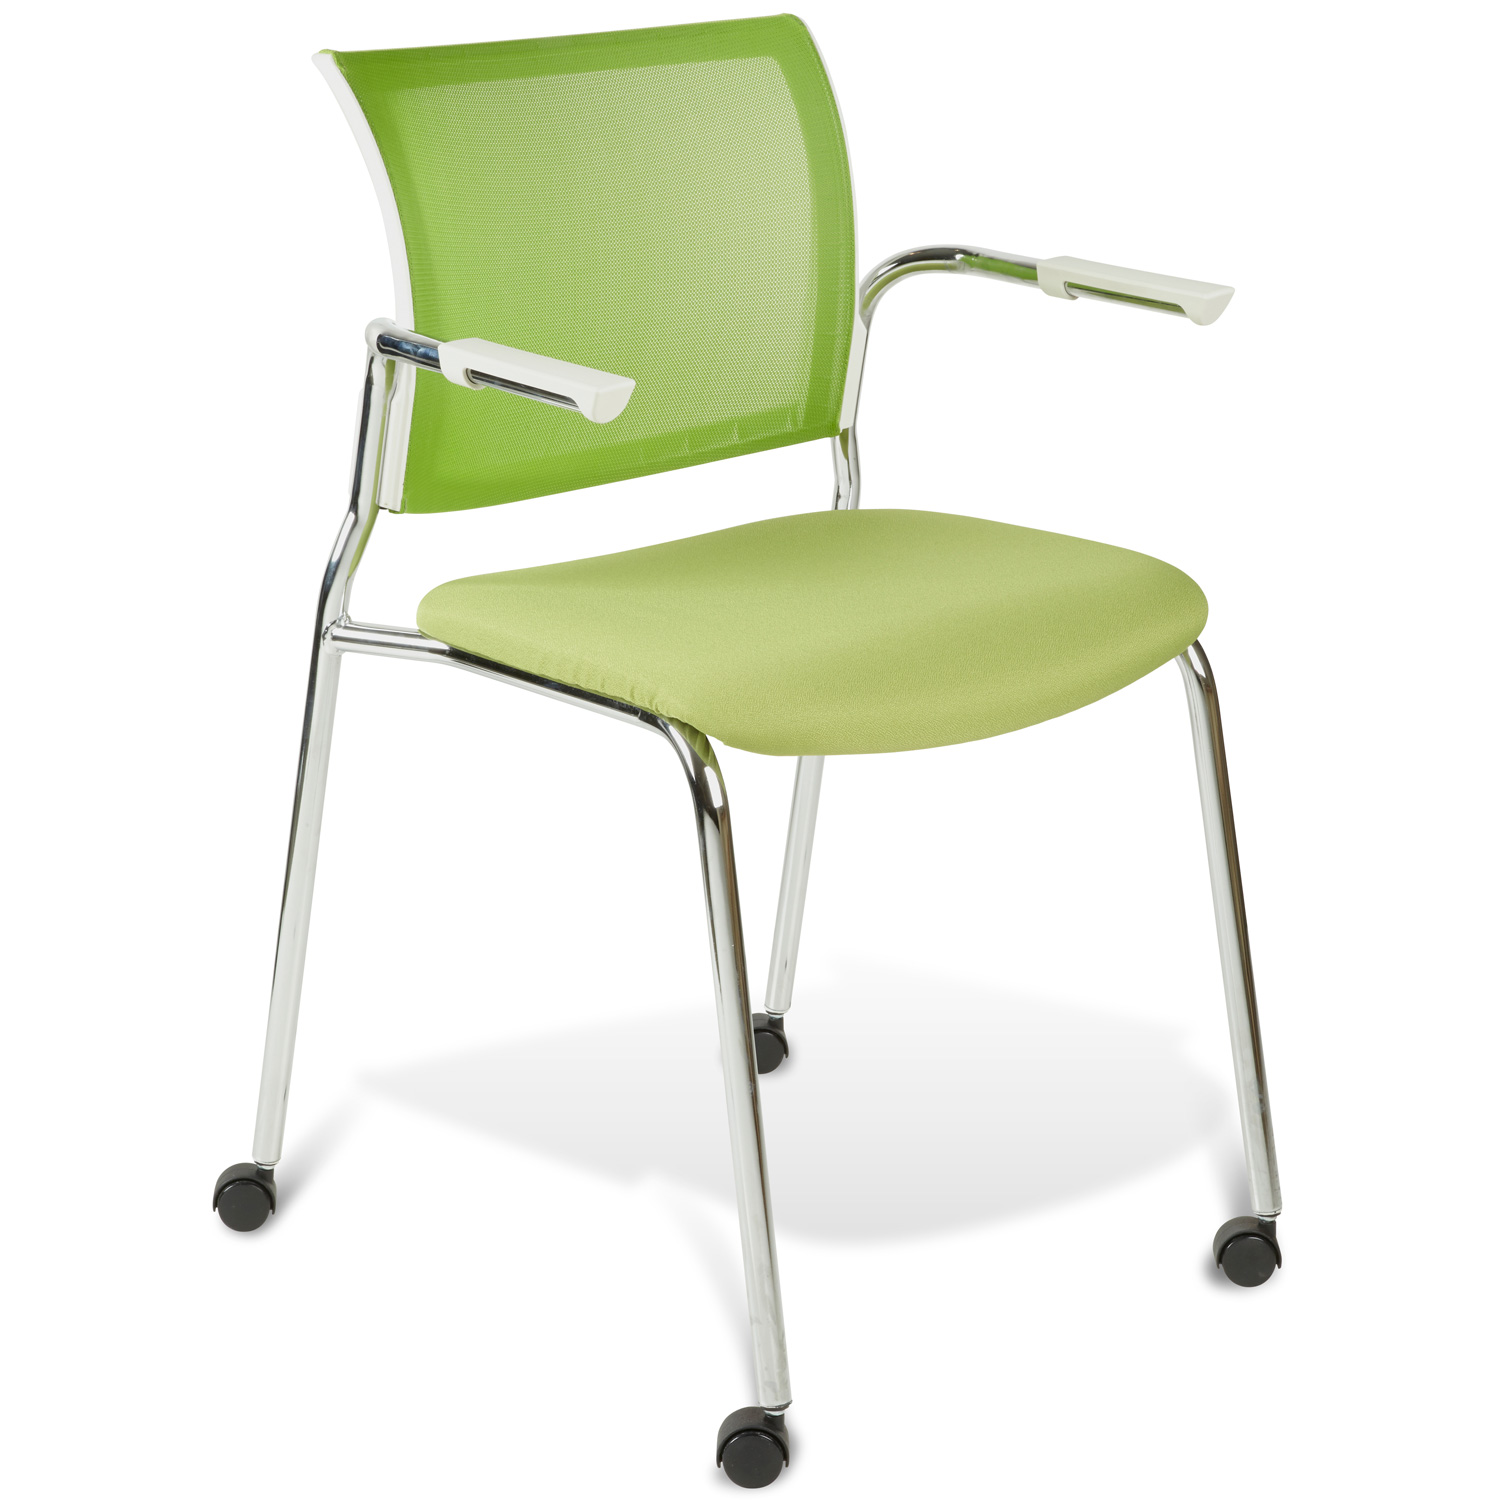 Jenna Conference Chair - Casters, Stackable, Green